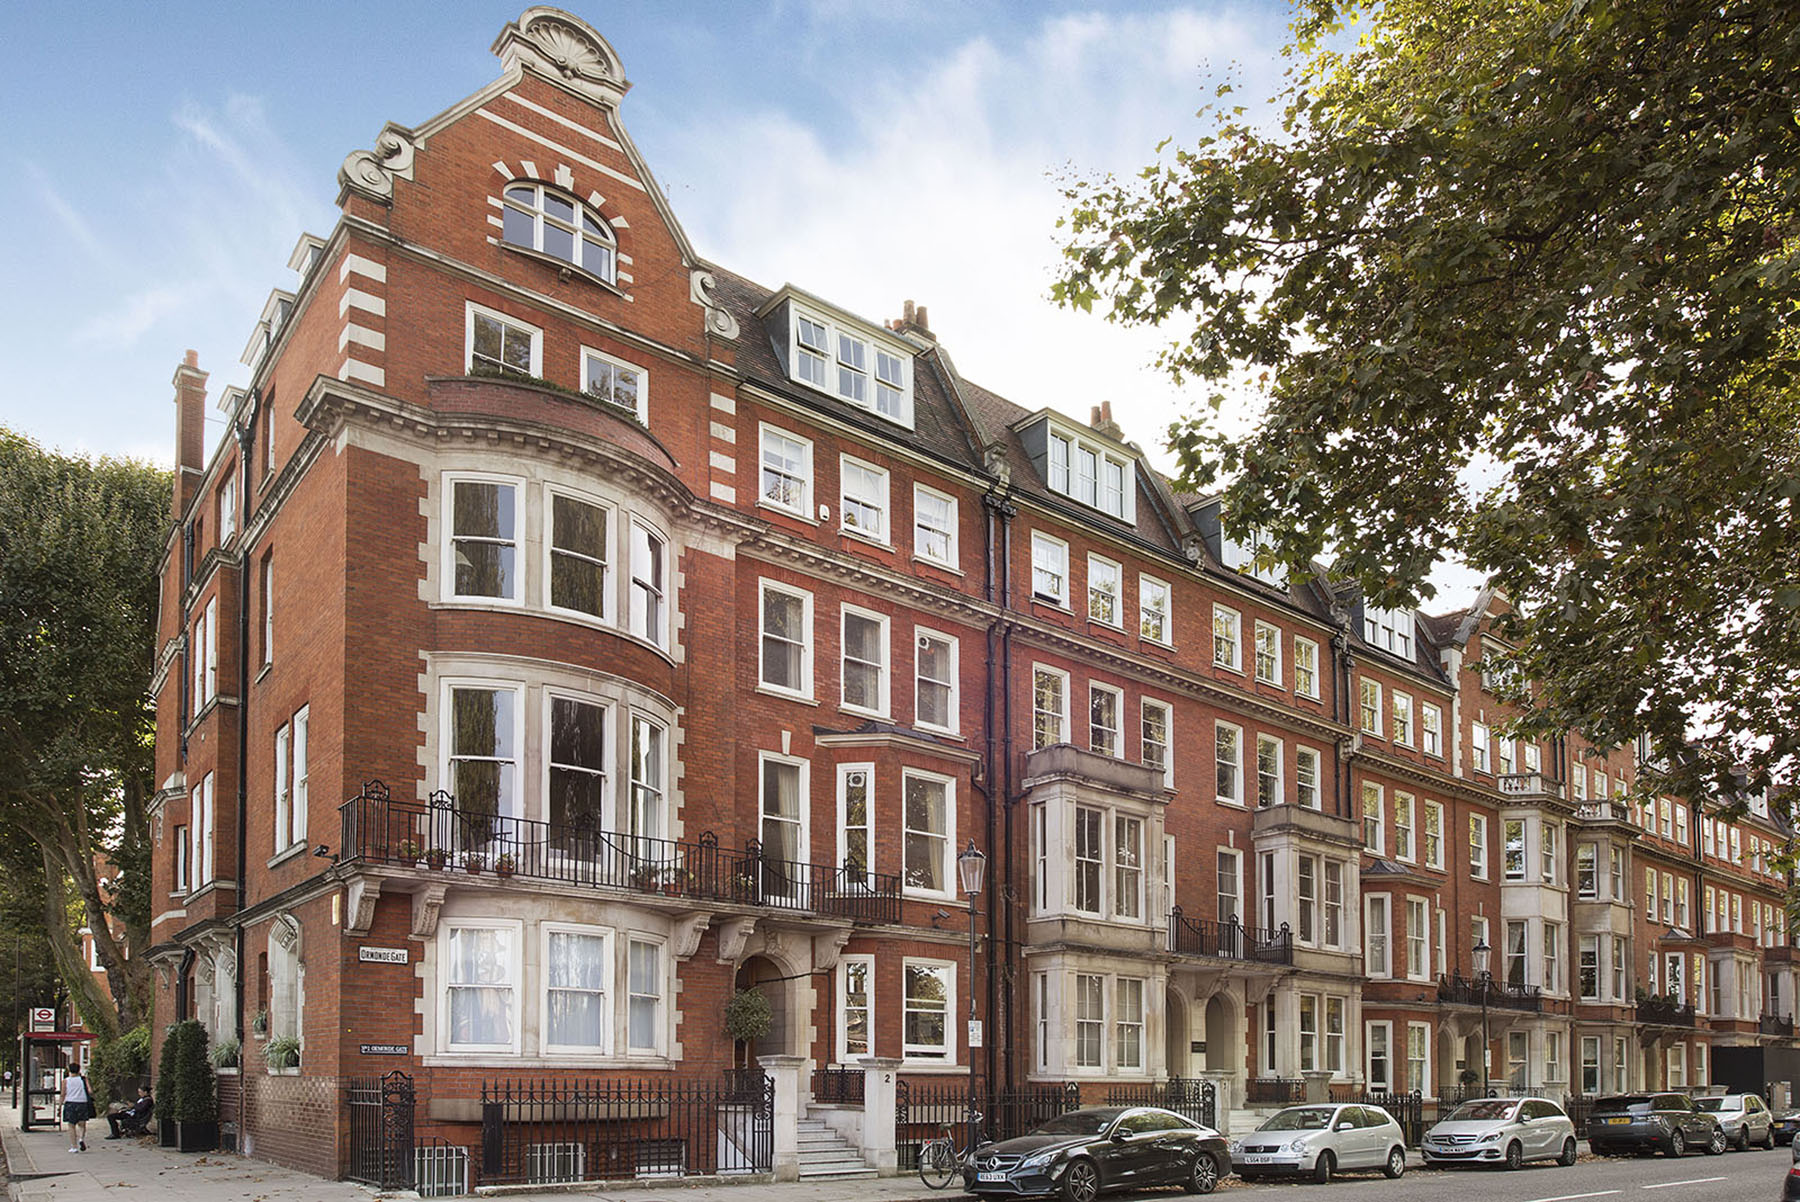 Appartement pour l Vente à Ormonde Gate London, Angleterre, Royaume-Uni